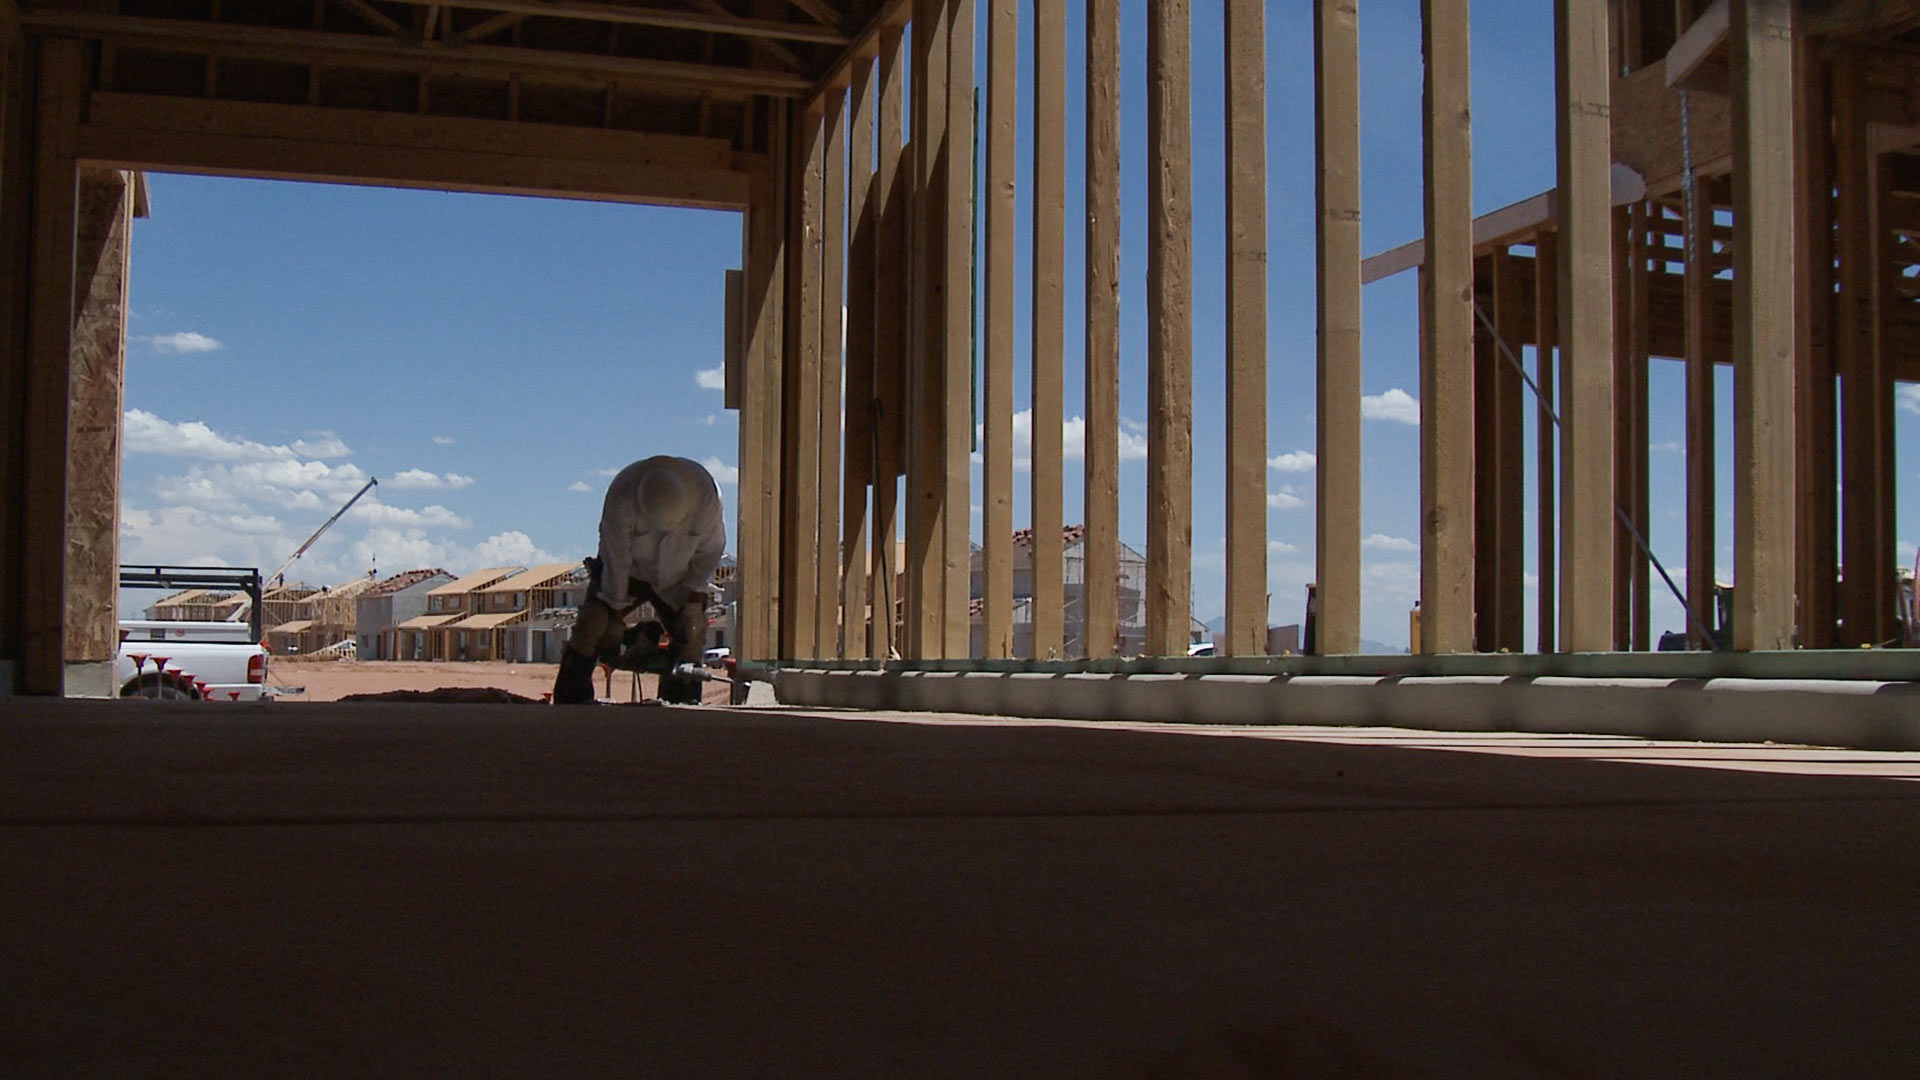 Arizona is expected to add jobs in the construction sector.